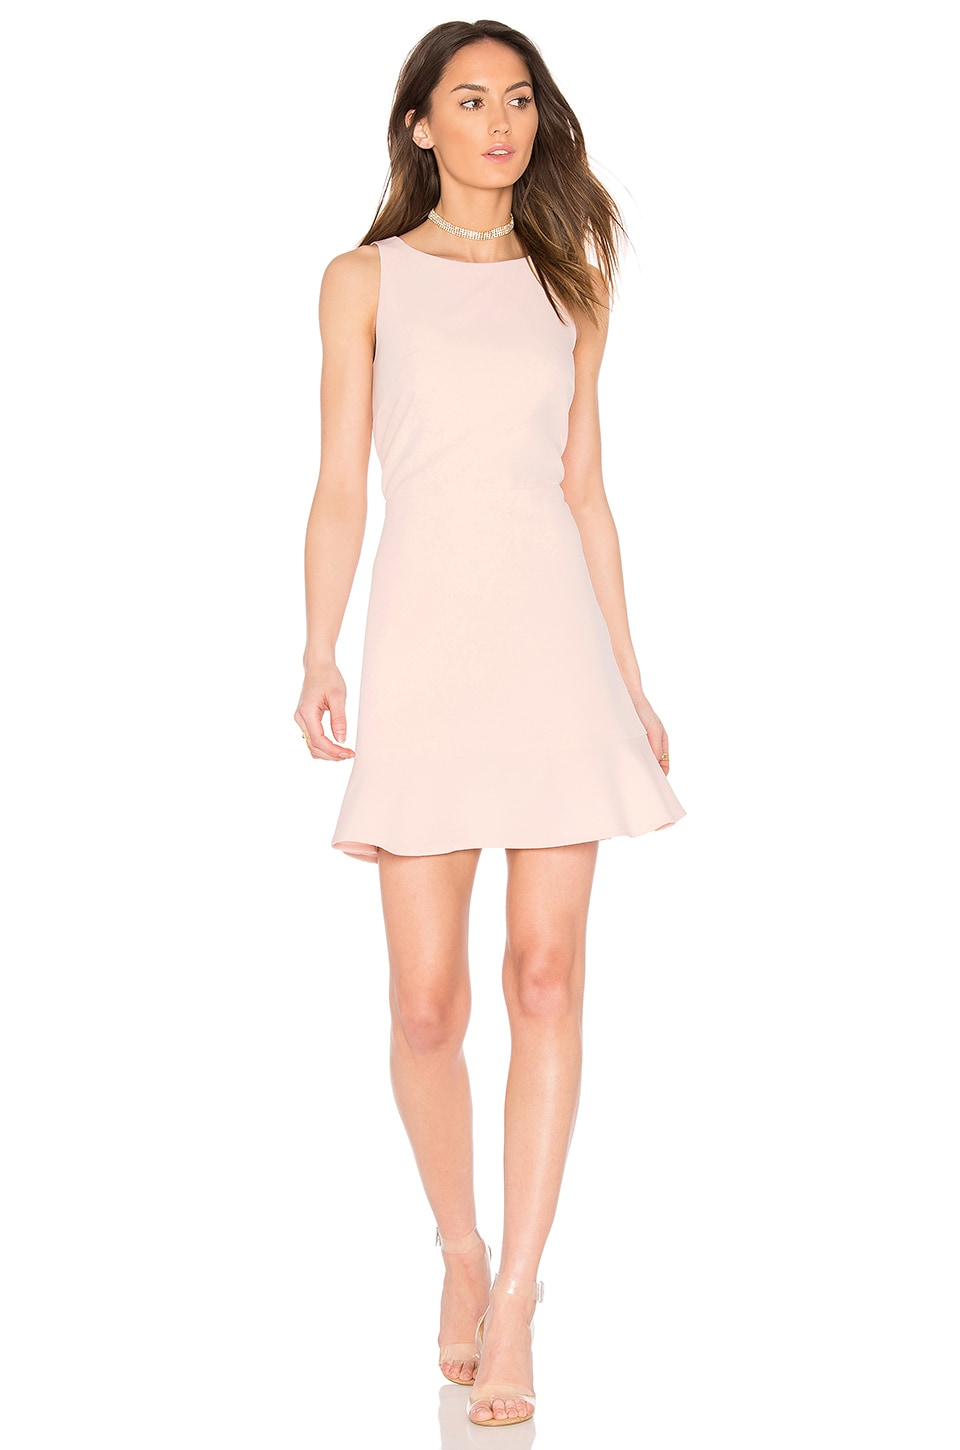 Rebecca Minkoff Tiffani Dress in Pink Sand